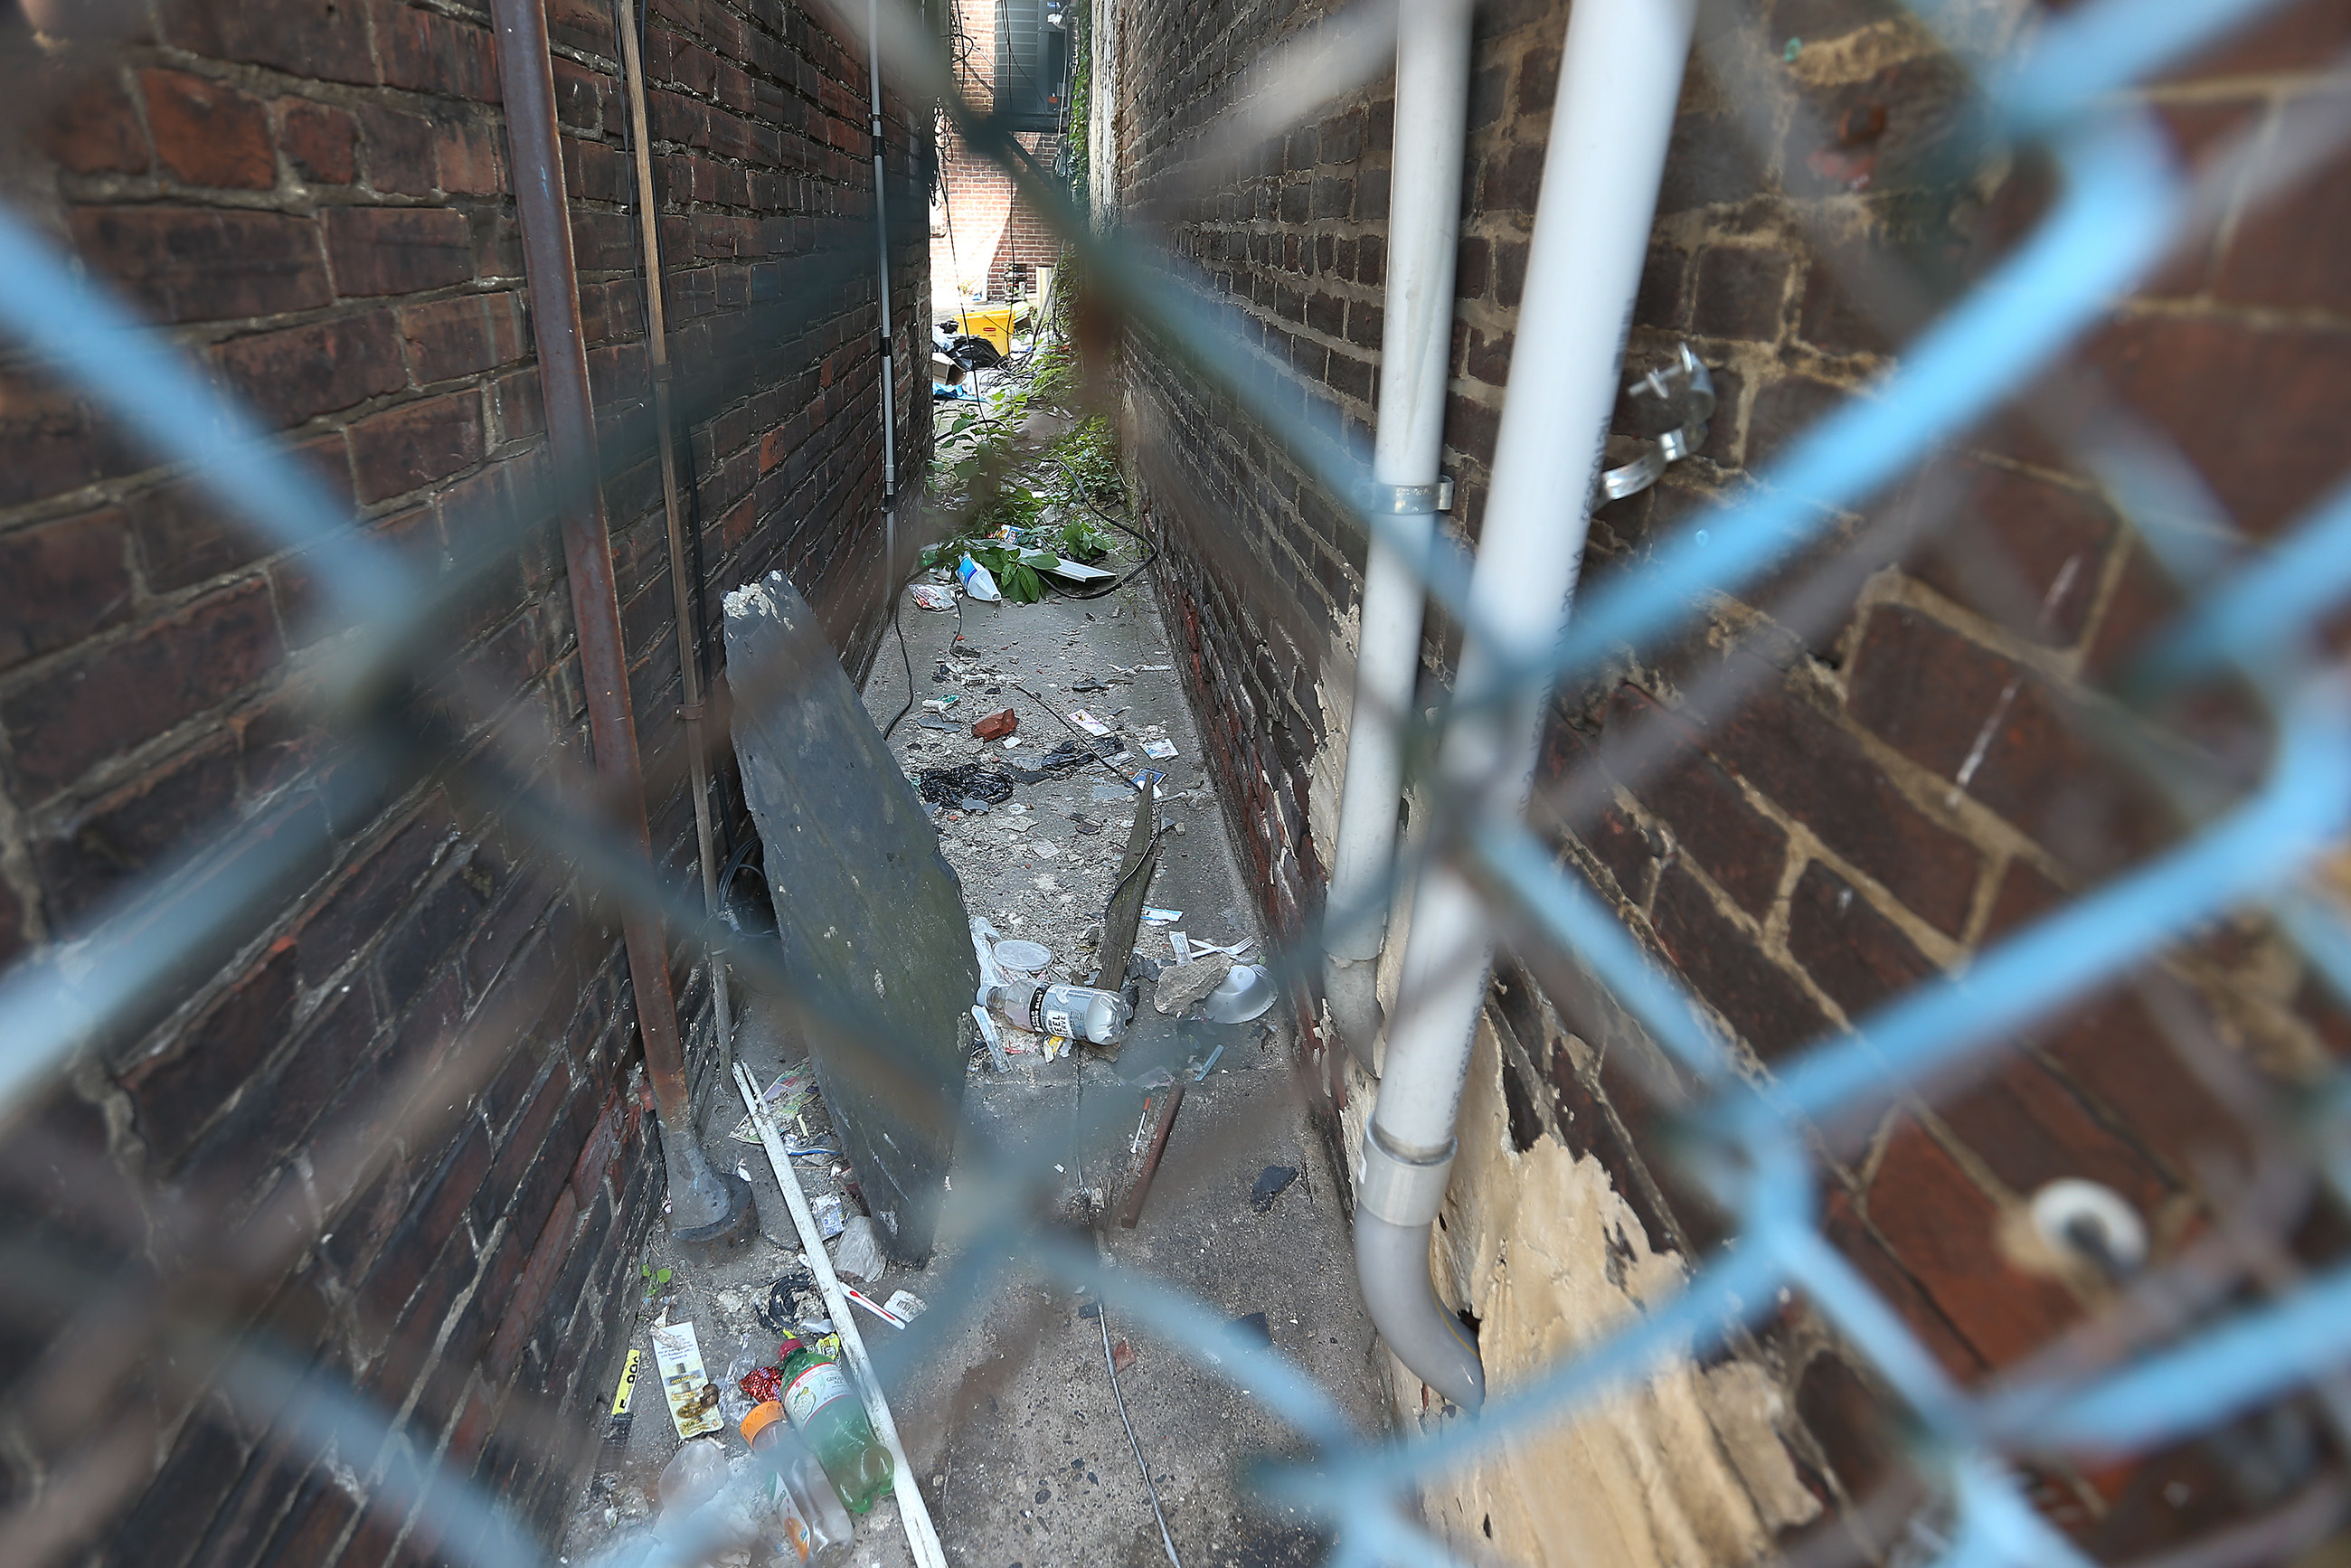 An alley near the Somerset EL station, where an unknown man died of an overdose in December.